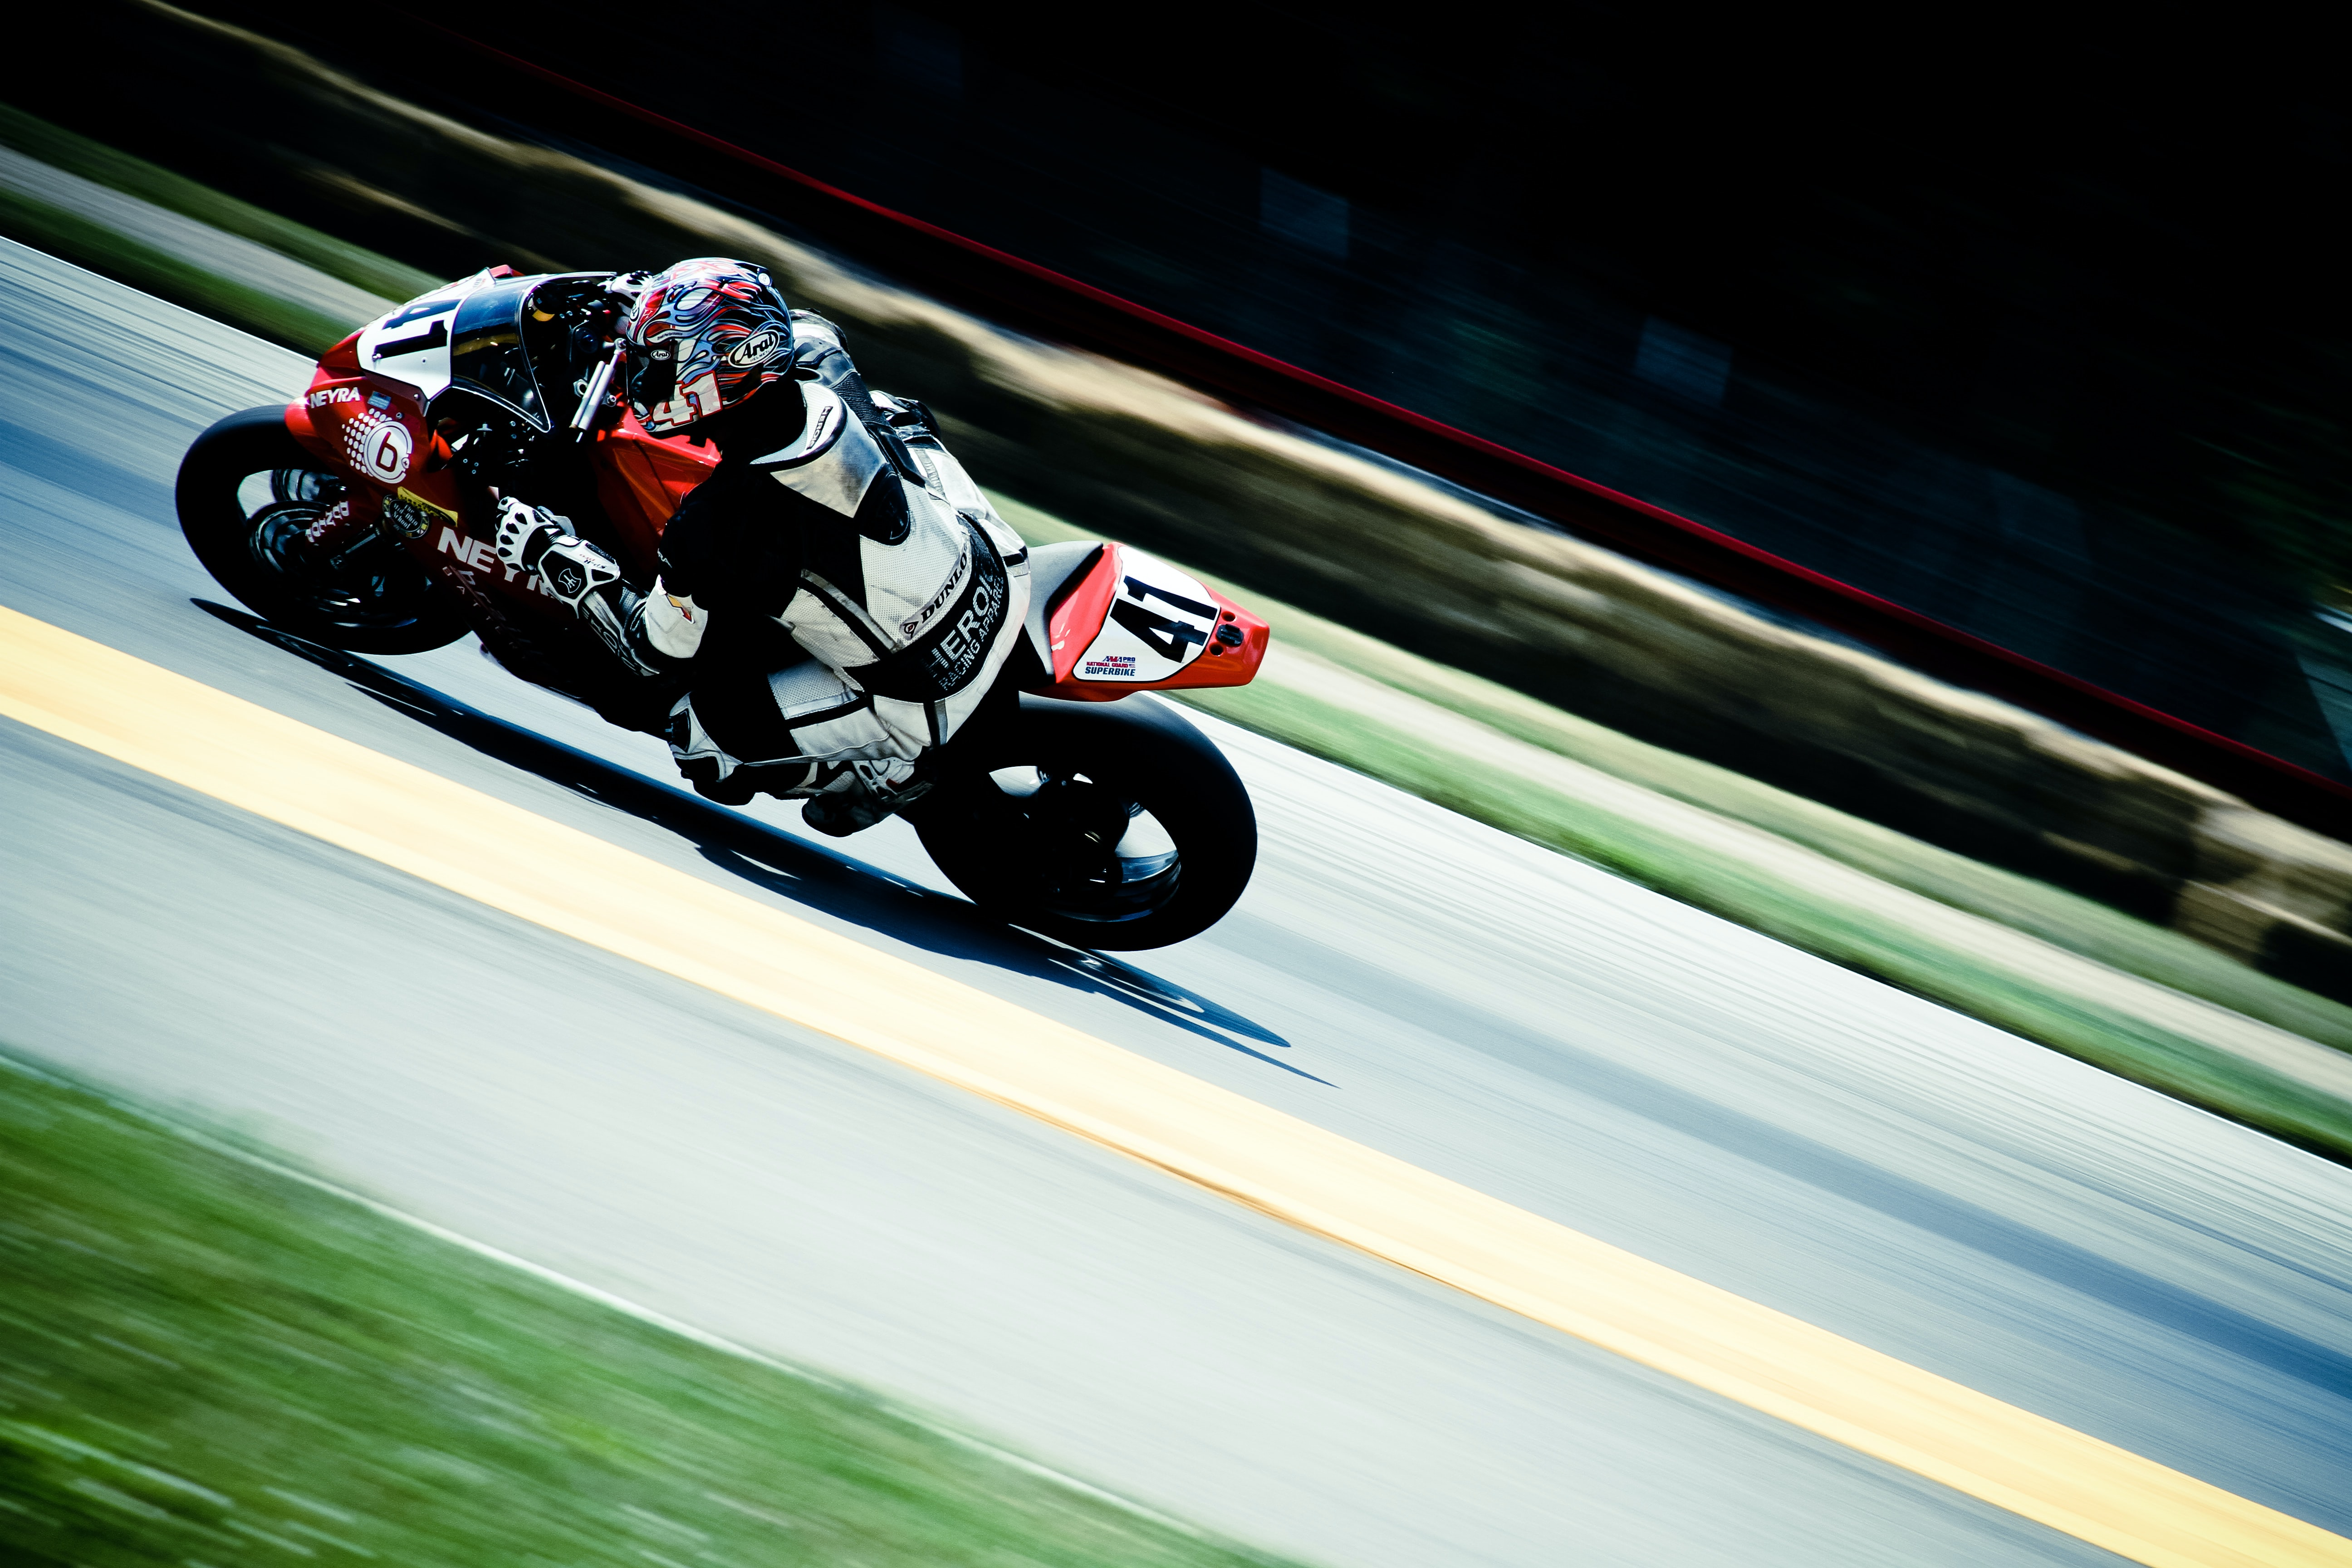 racer riding on sports bike on race track